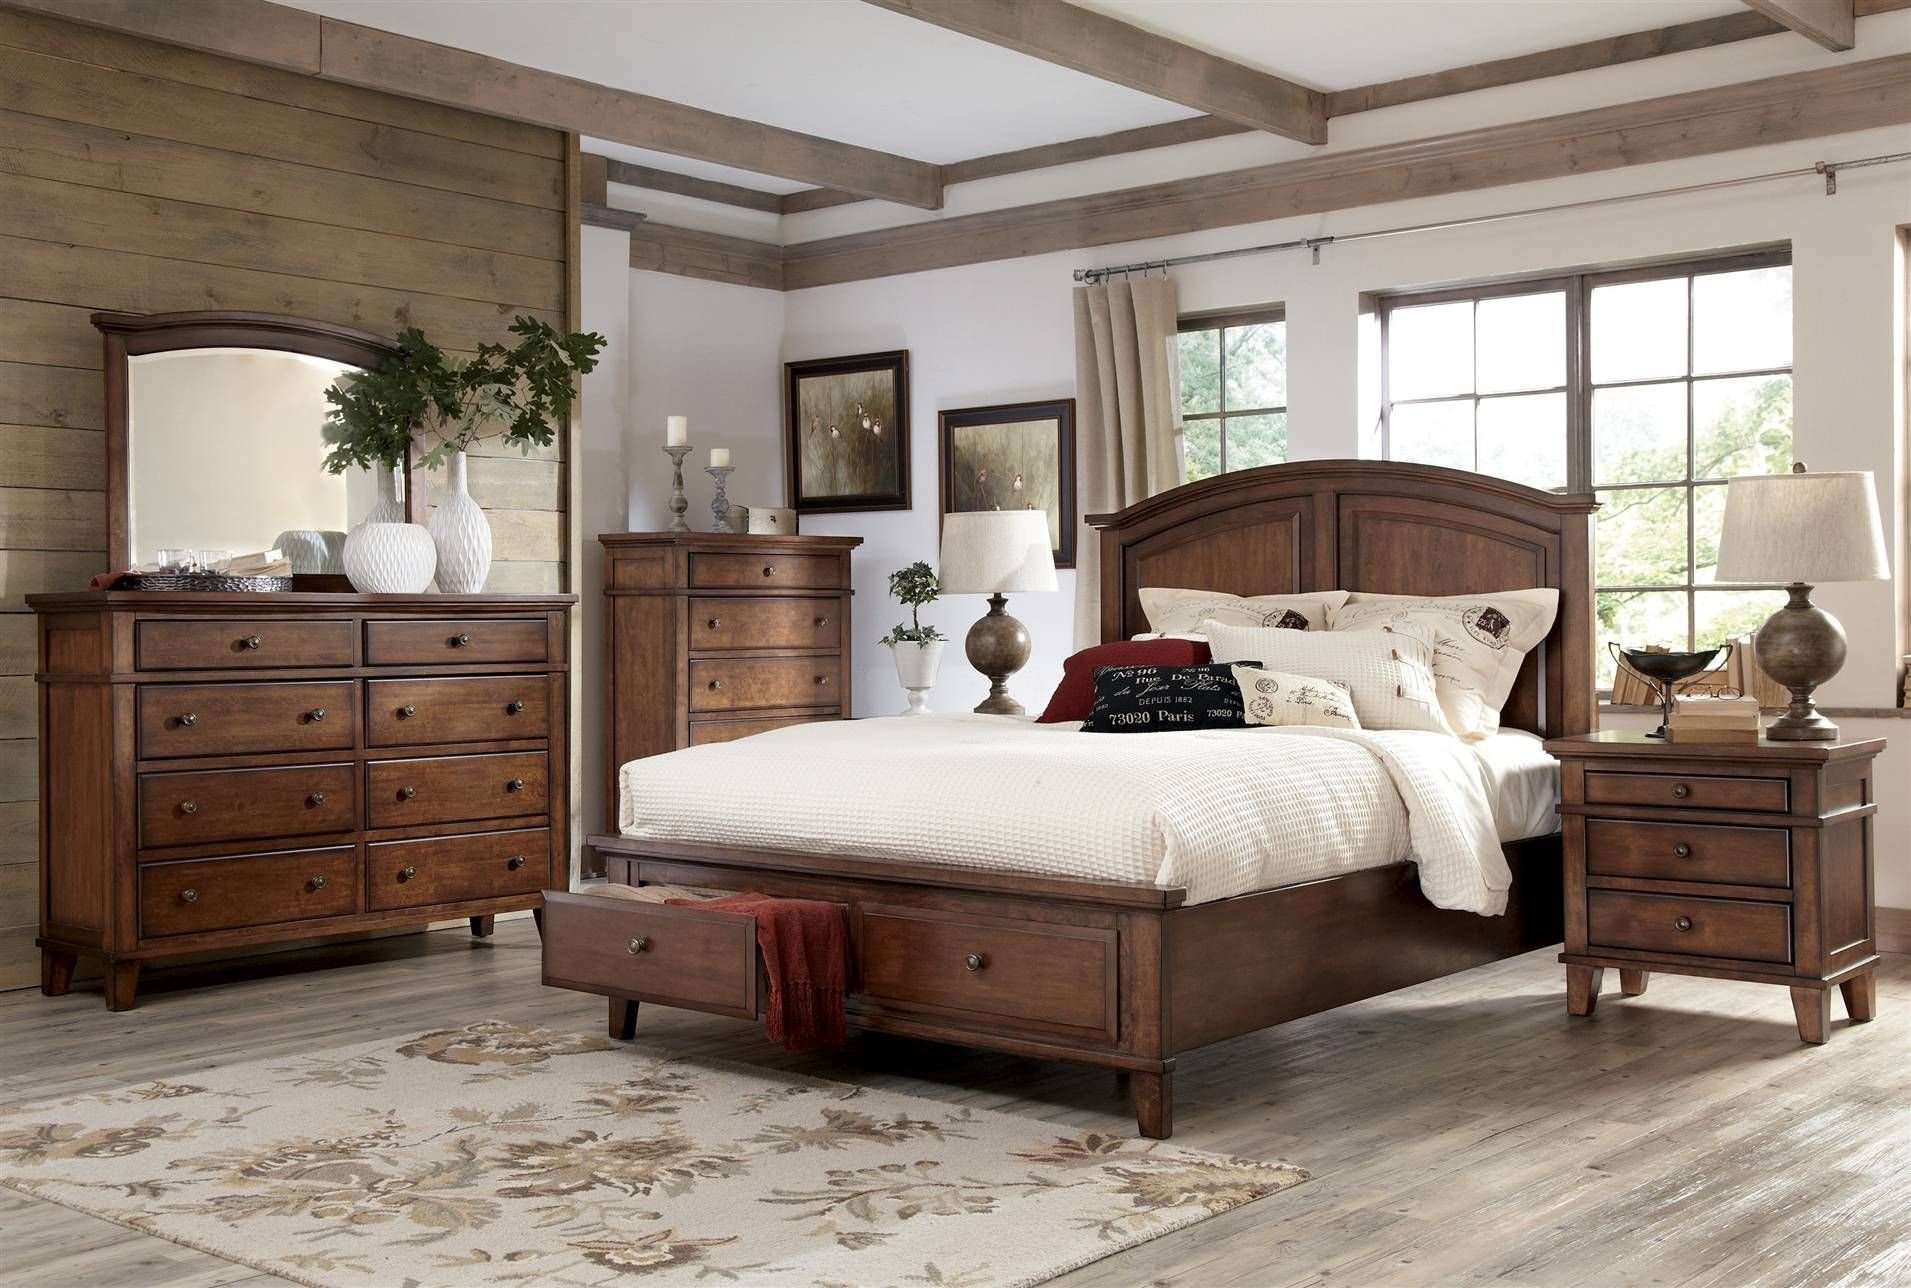 Cal King Bedroom Set Elegant Burkesville Cal King Storage Bed